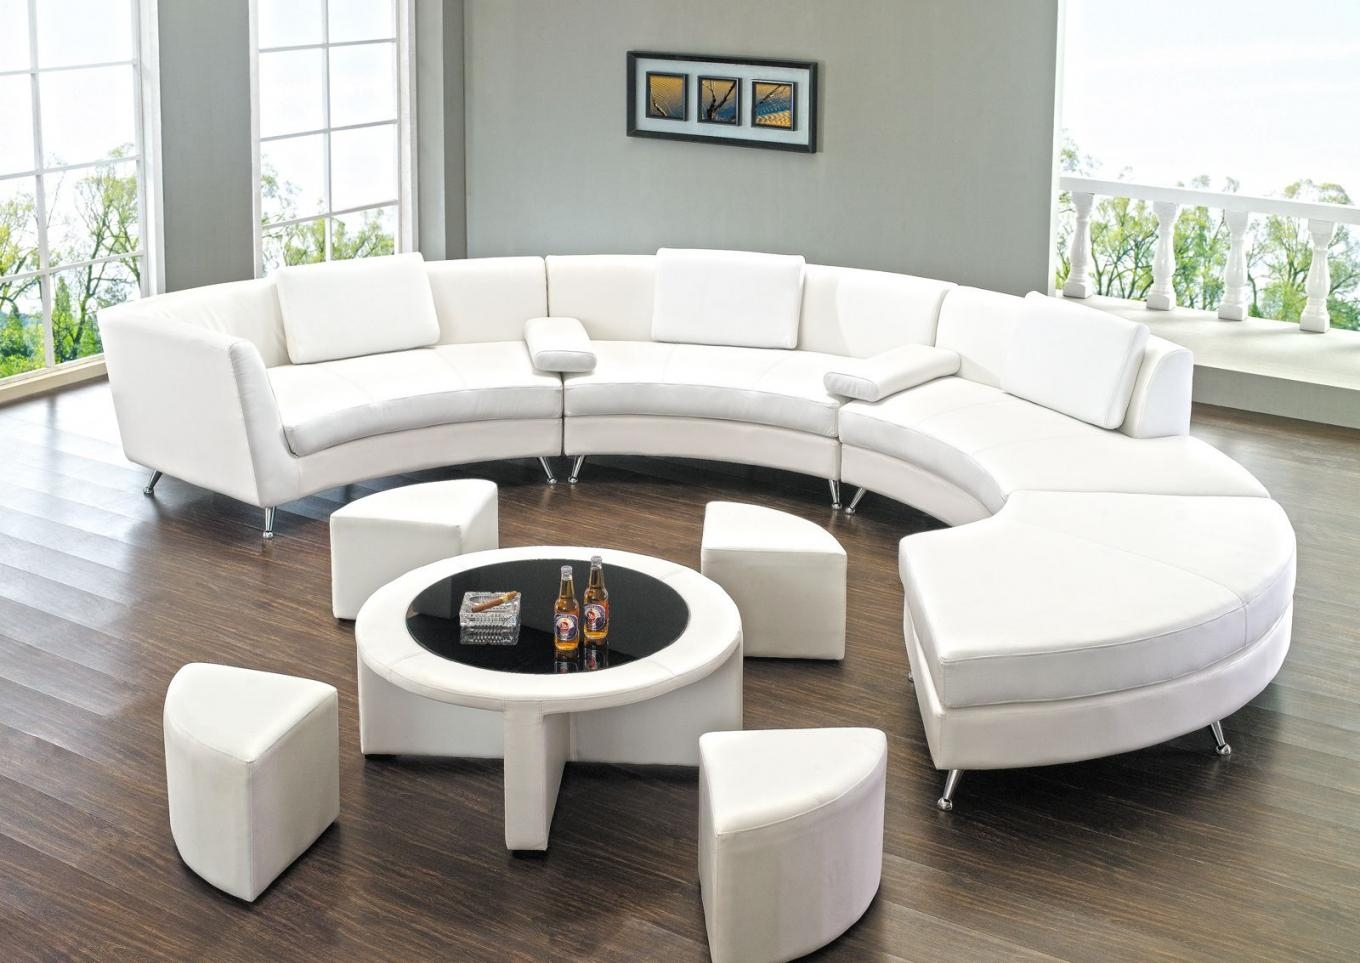 Circular Sectional Sofa Bed | Tehranmix Decoration With Circular Sectional Sofa (View 3 of 15)